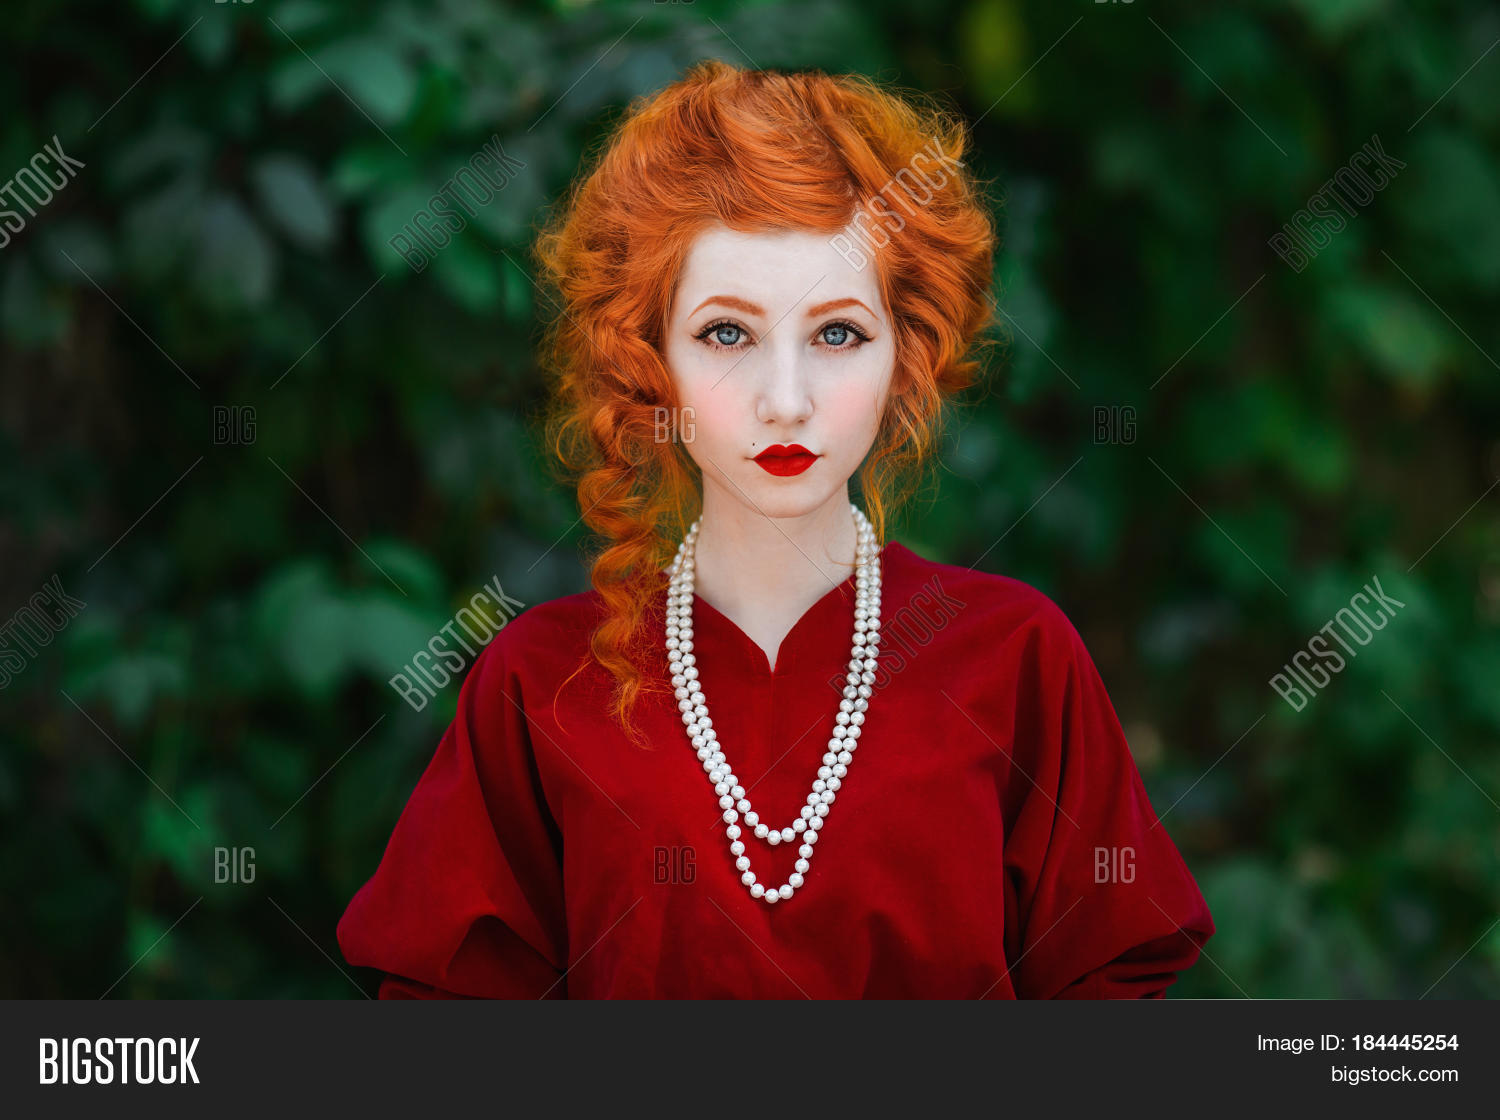 Cute Woman Red Hair Image & Photo (Free Trial)  Bigstock